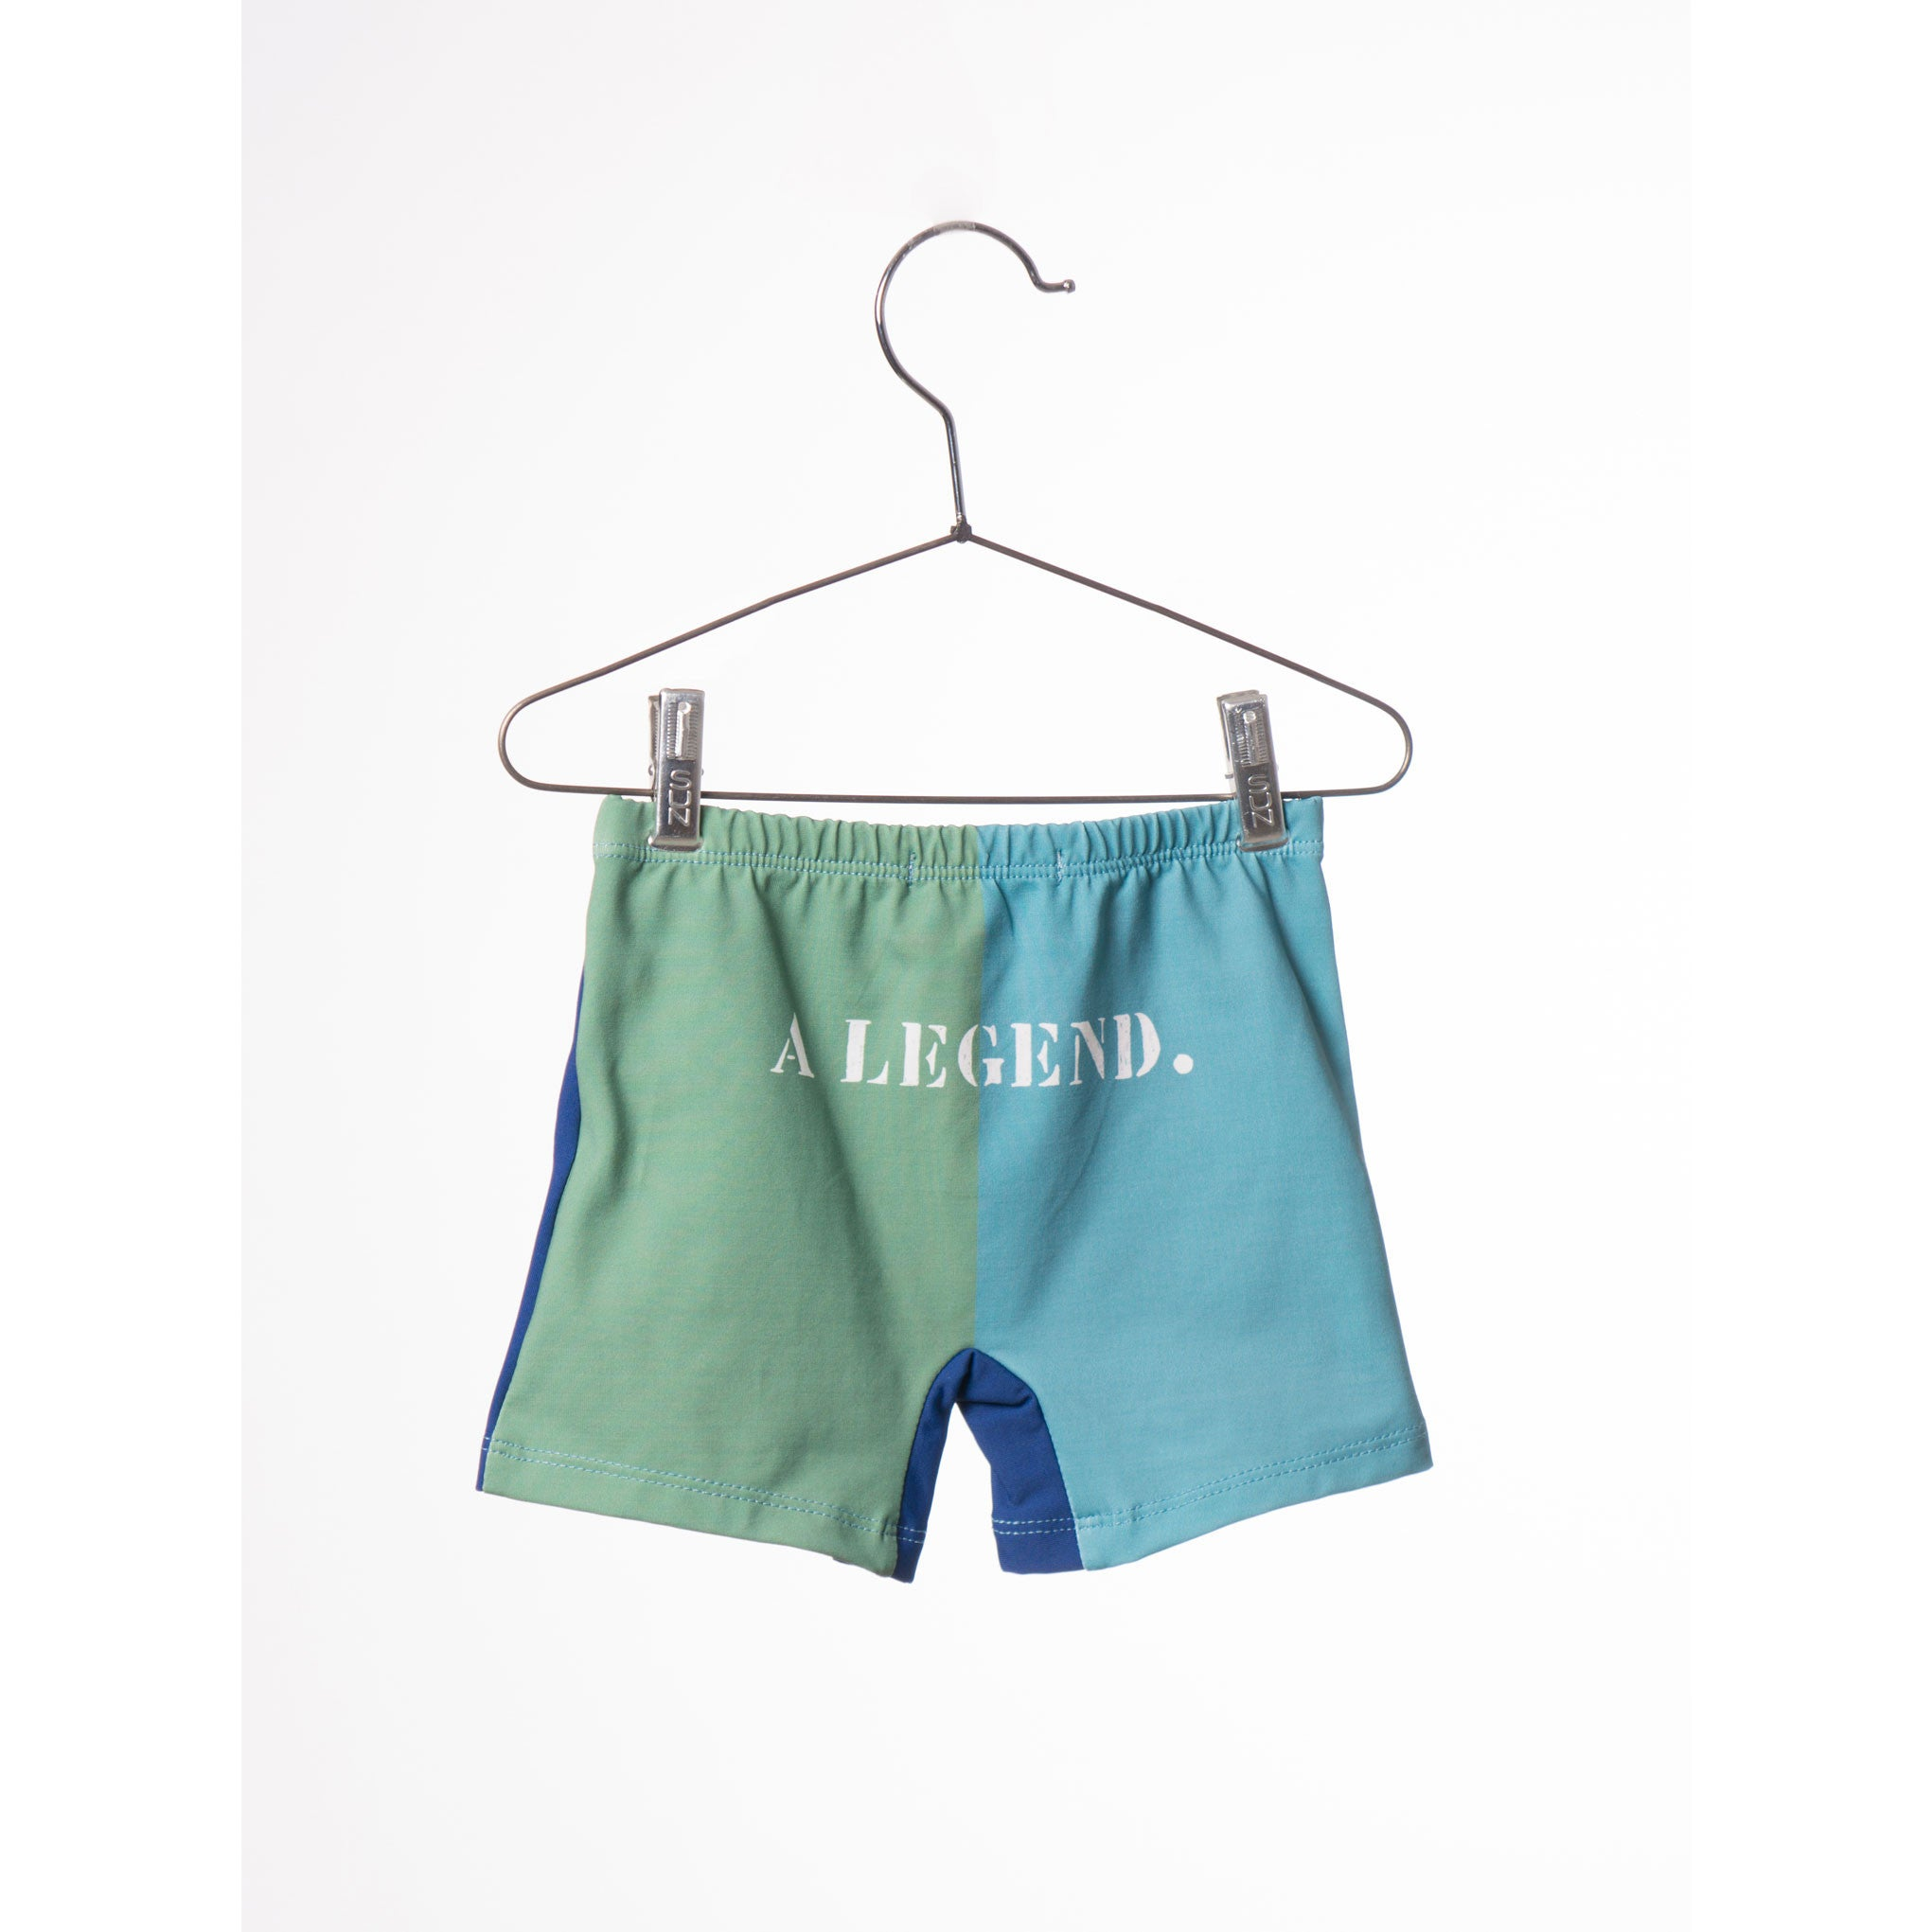 Bobo Choses A Legend Baby Swim Trunk - Ladida